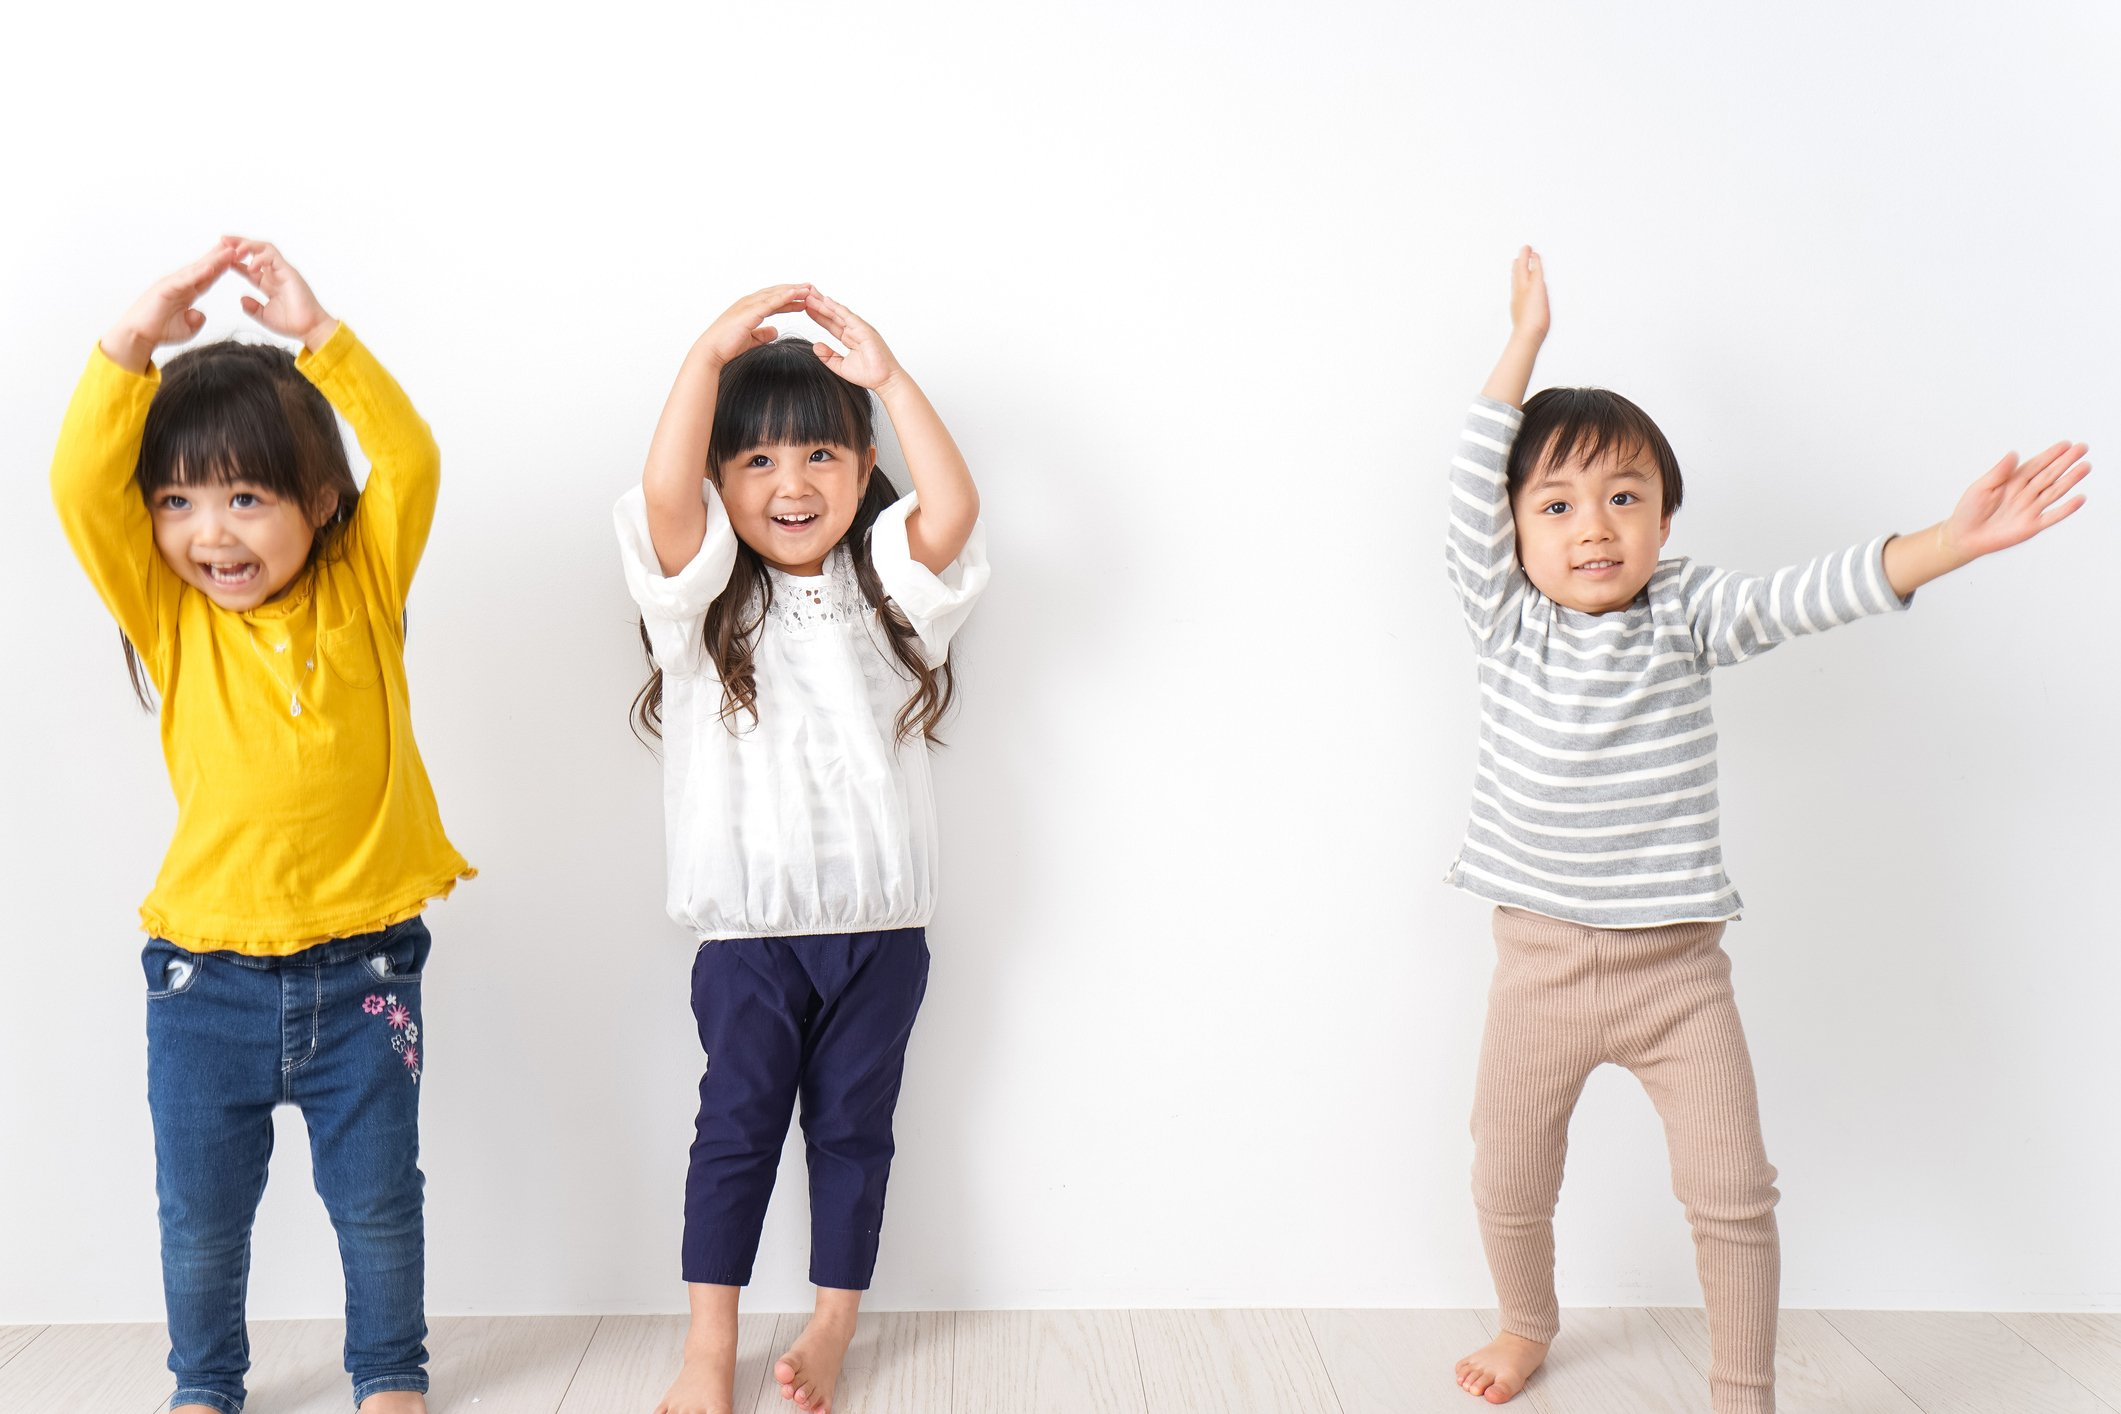 What Stops Kids From Living a Physical Active Lifestyle?